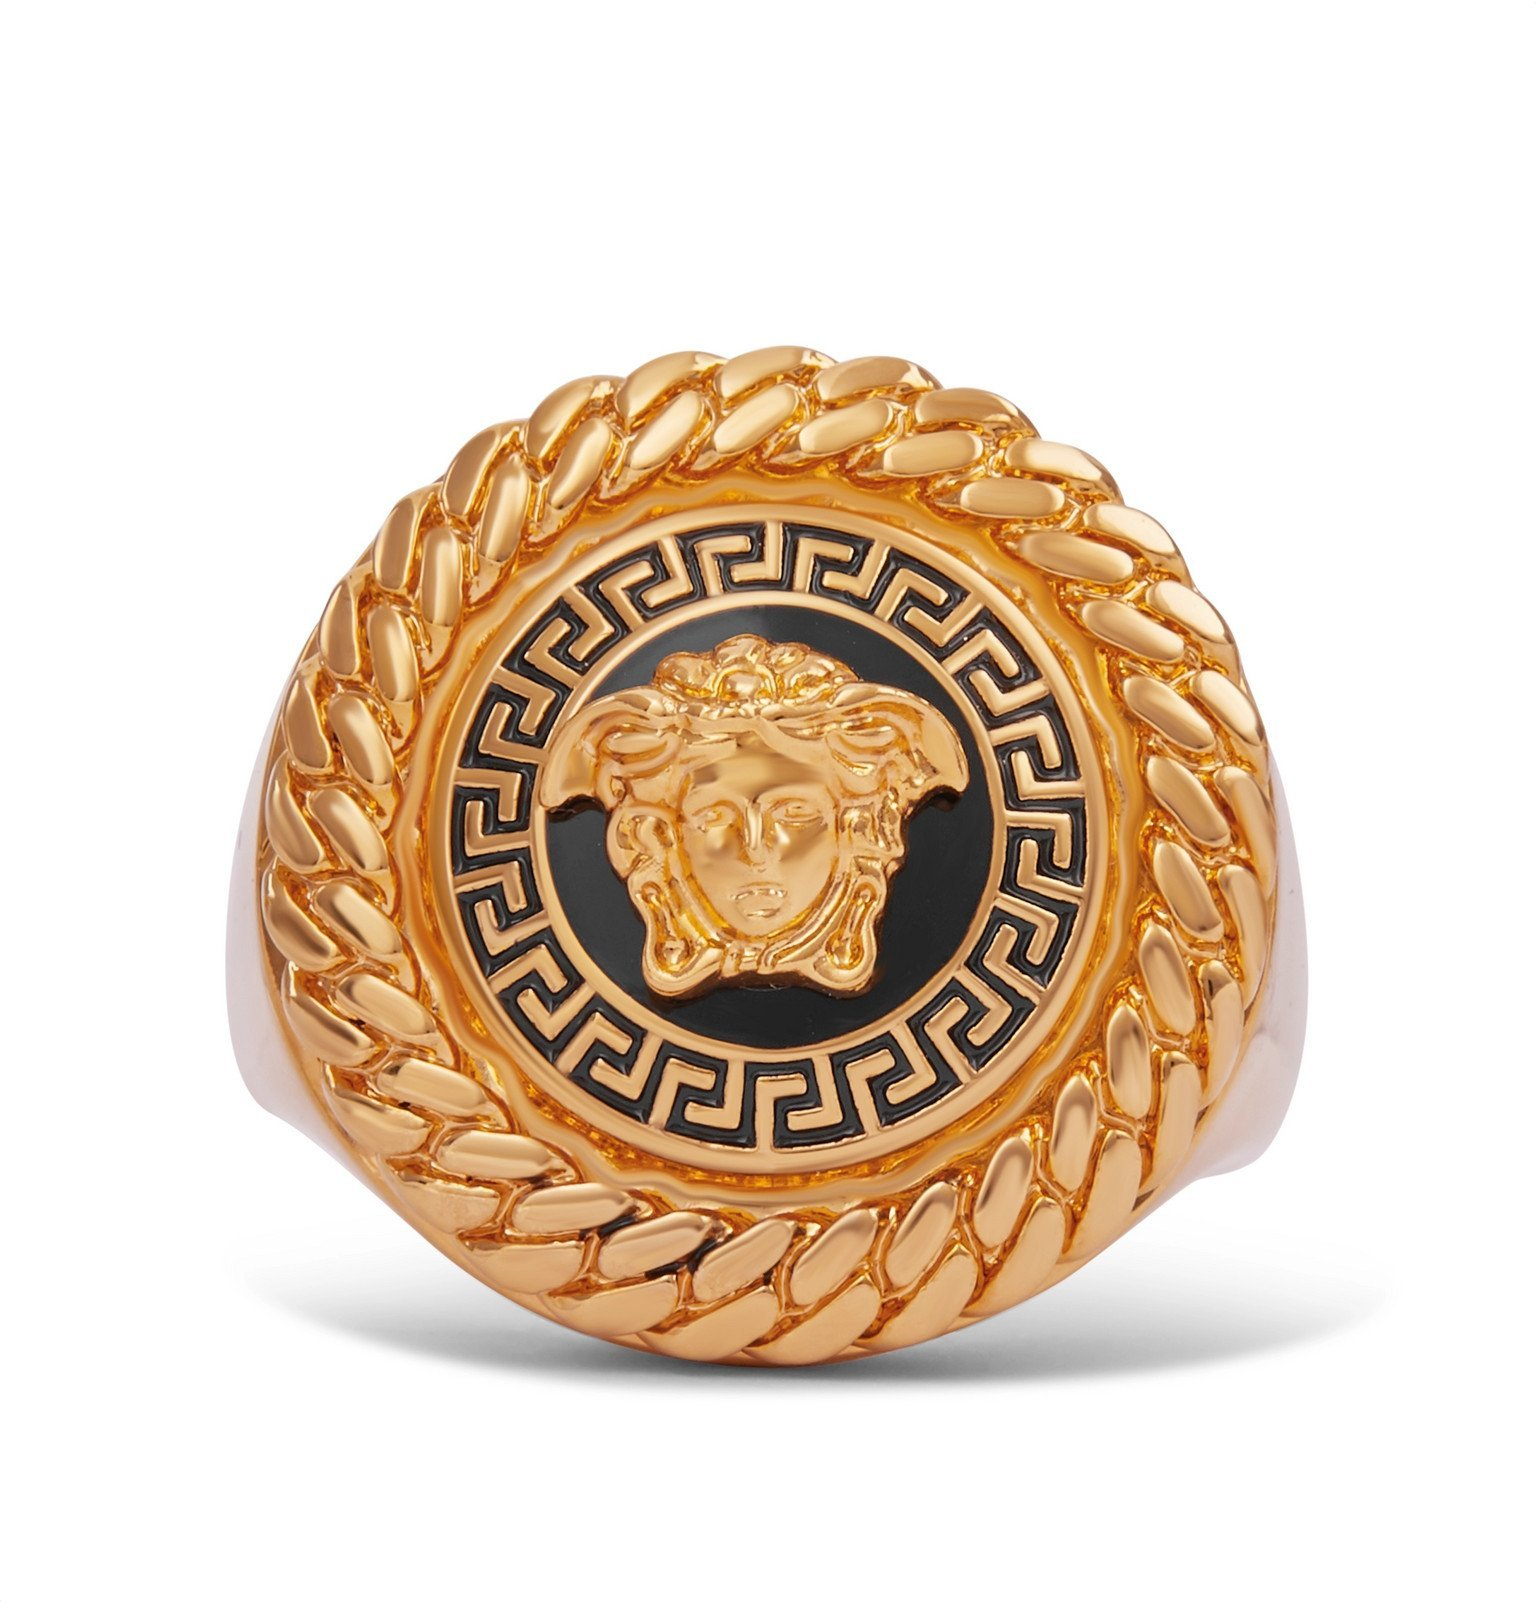 Versace - Medusa Gold-Tone Signet Ring - Unknown